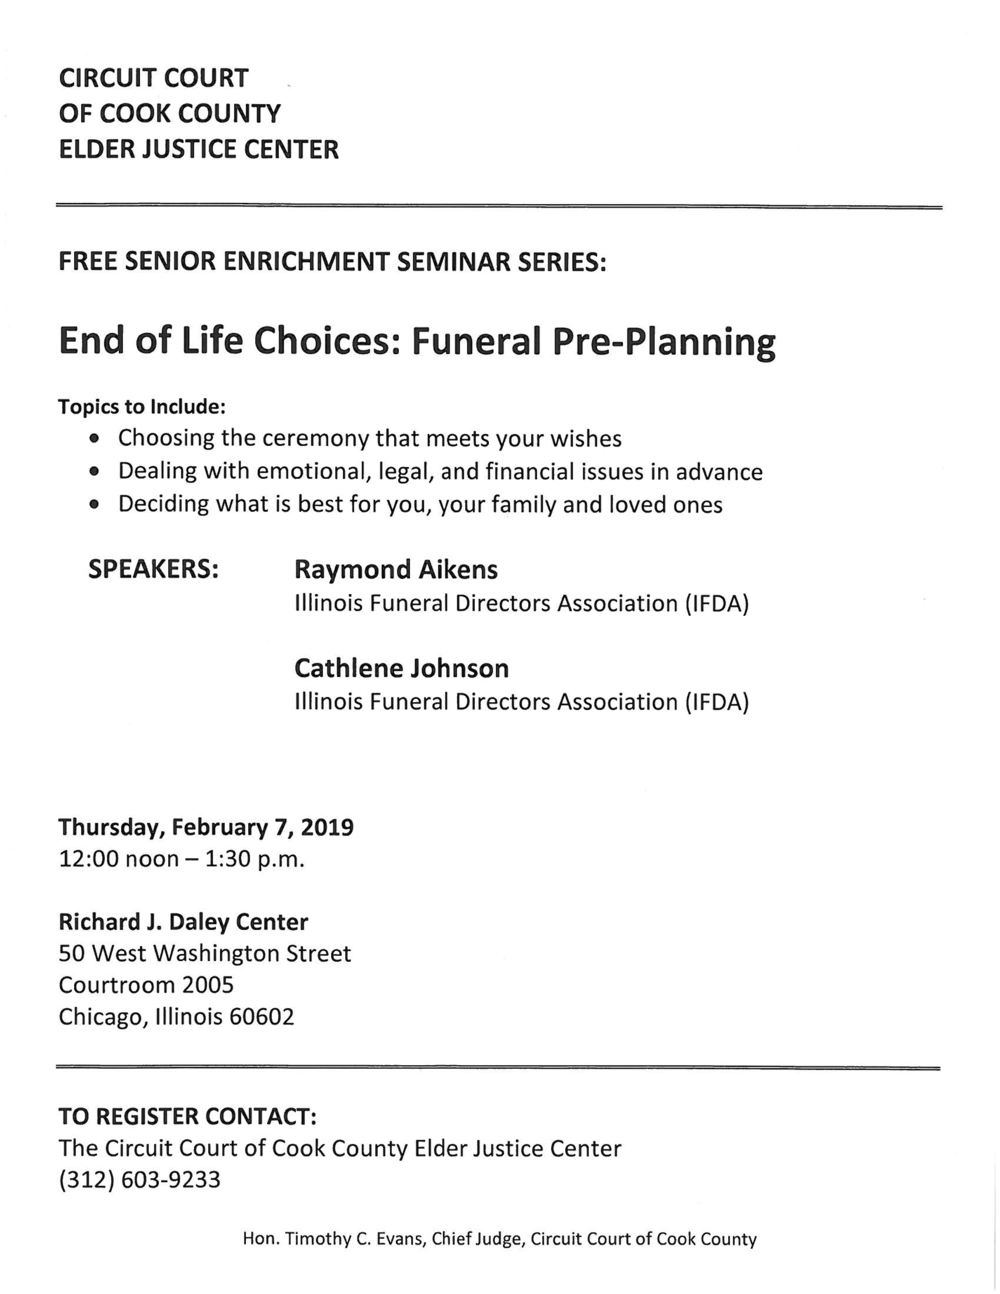 END OF LIFE CHOICES-FUNERAL PRE-PLANNING (February 7, 2019).png